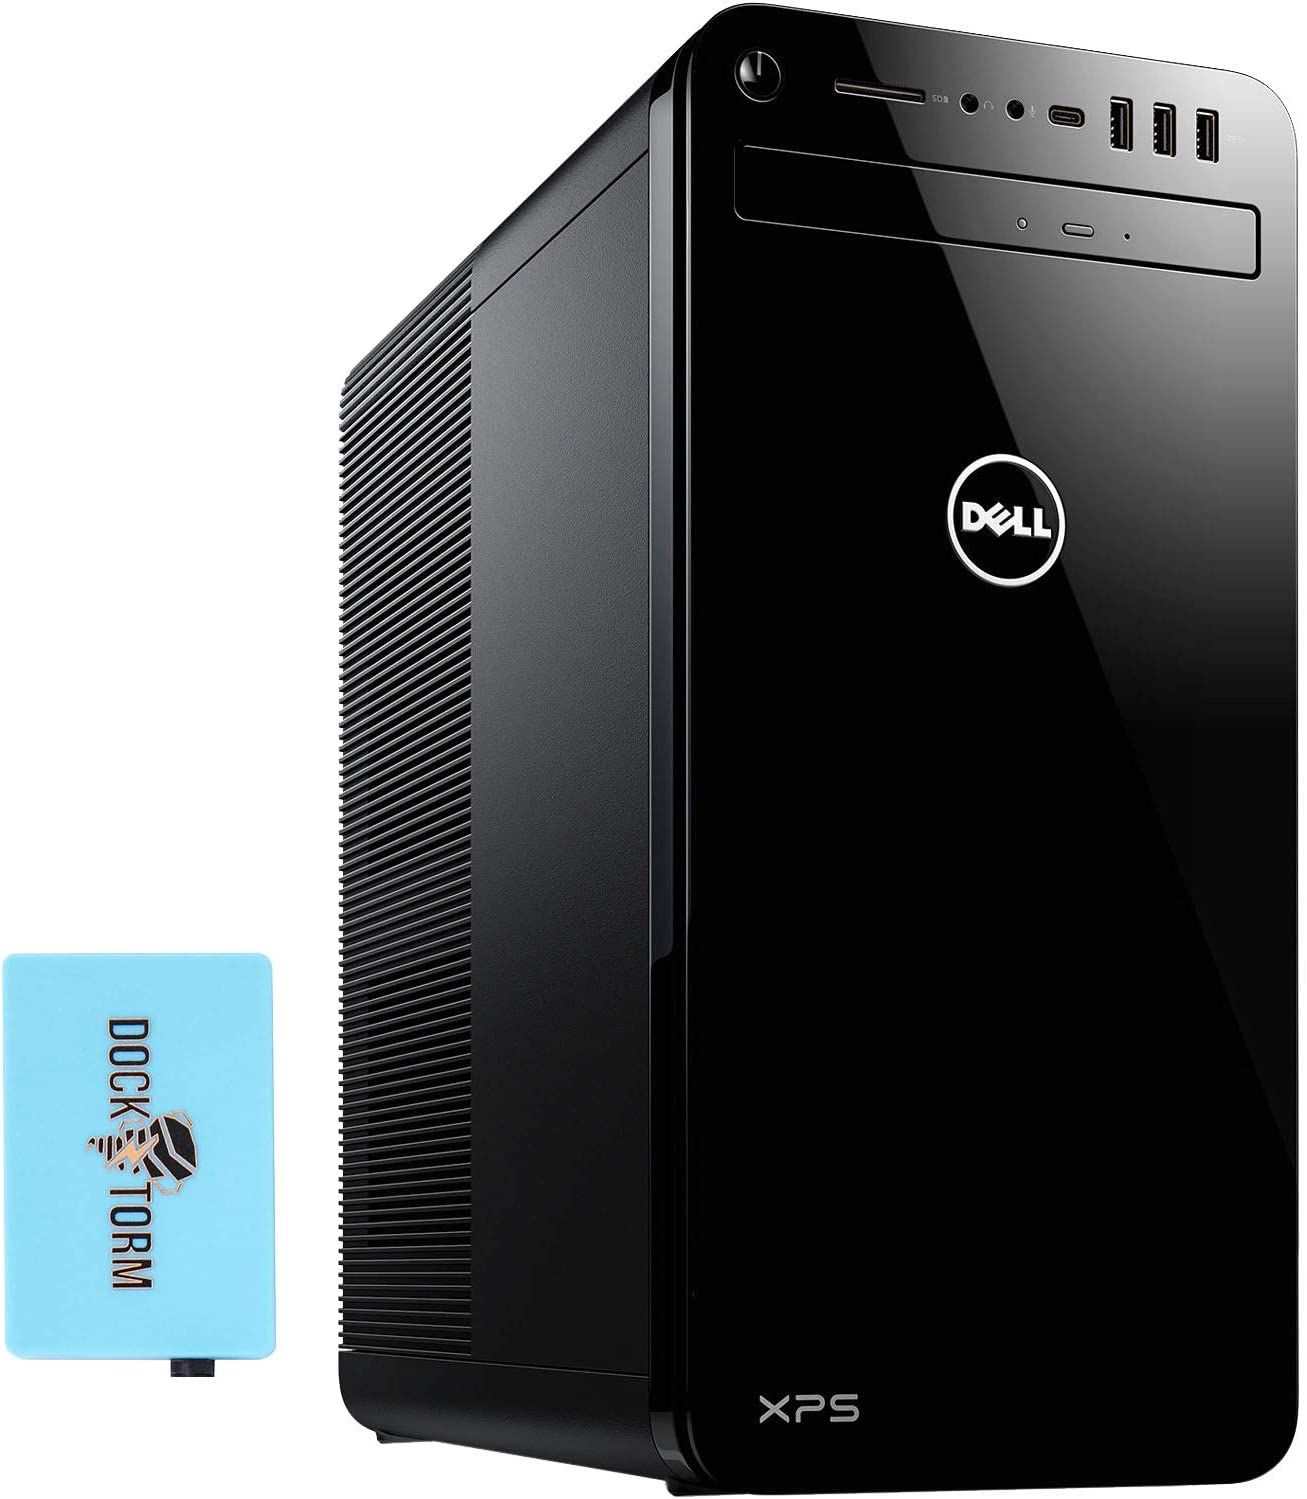 Dell XPS 8930 Home and Business Desktop (Intel i7-9700 8-Core, 32GB RAM, 2TB SATA SSD, NVIDIA GTX 1650, WiFi, Bluetooth, 6xUSB 3.1, 1xHDMI, 1 Display Port (DP), SD Card, Win 10 Home) with Hub